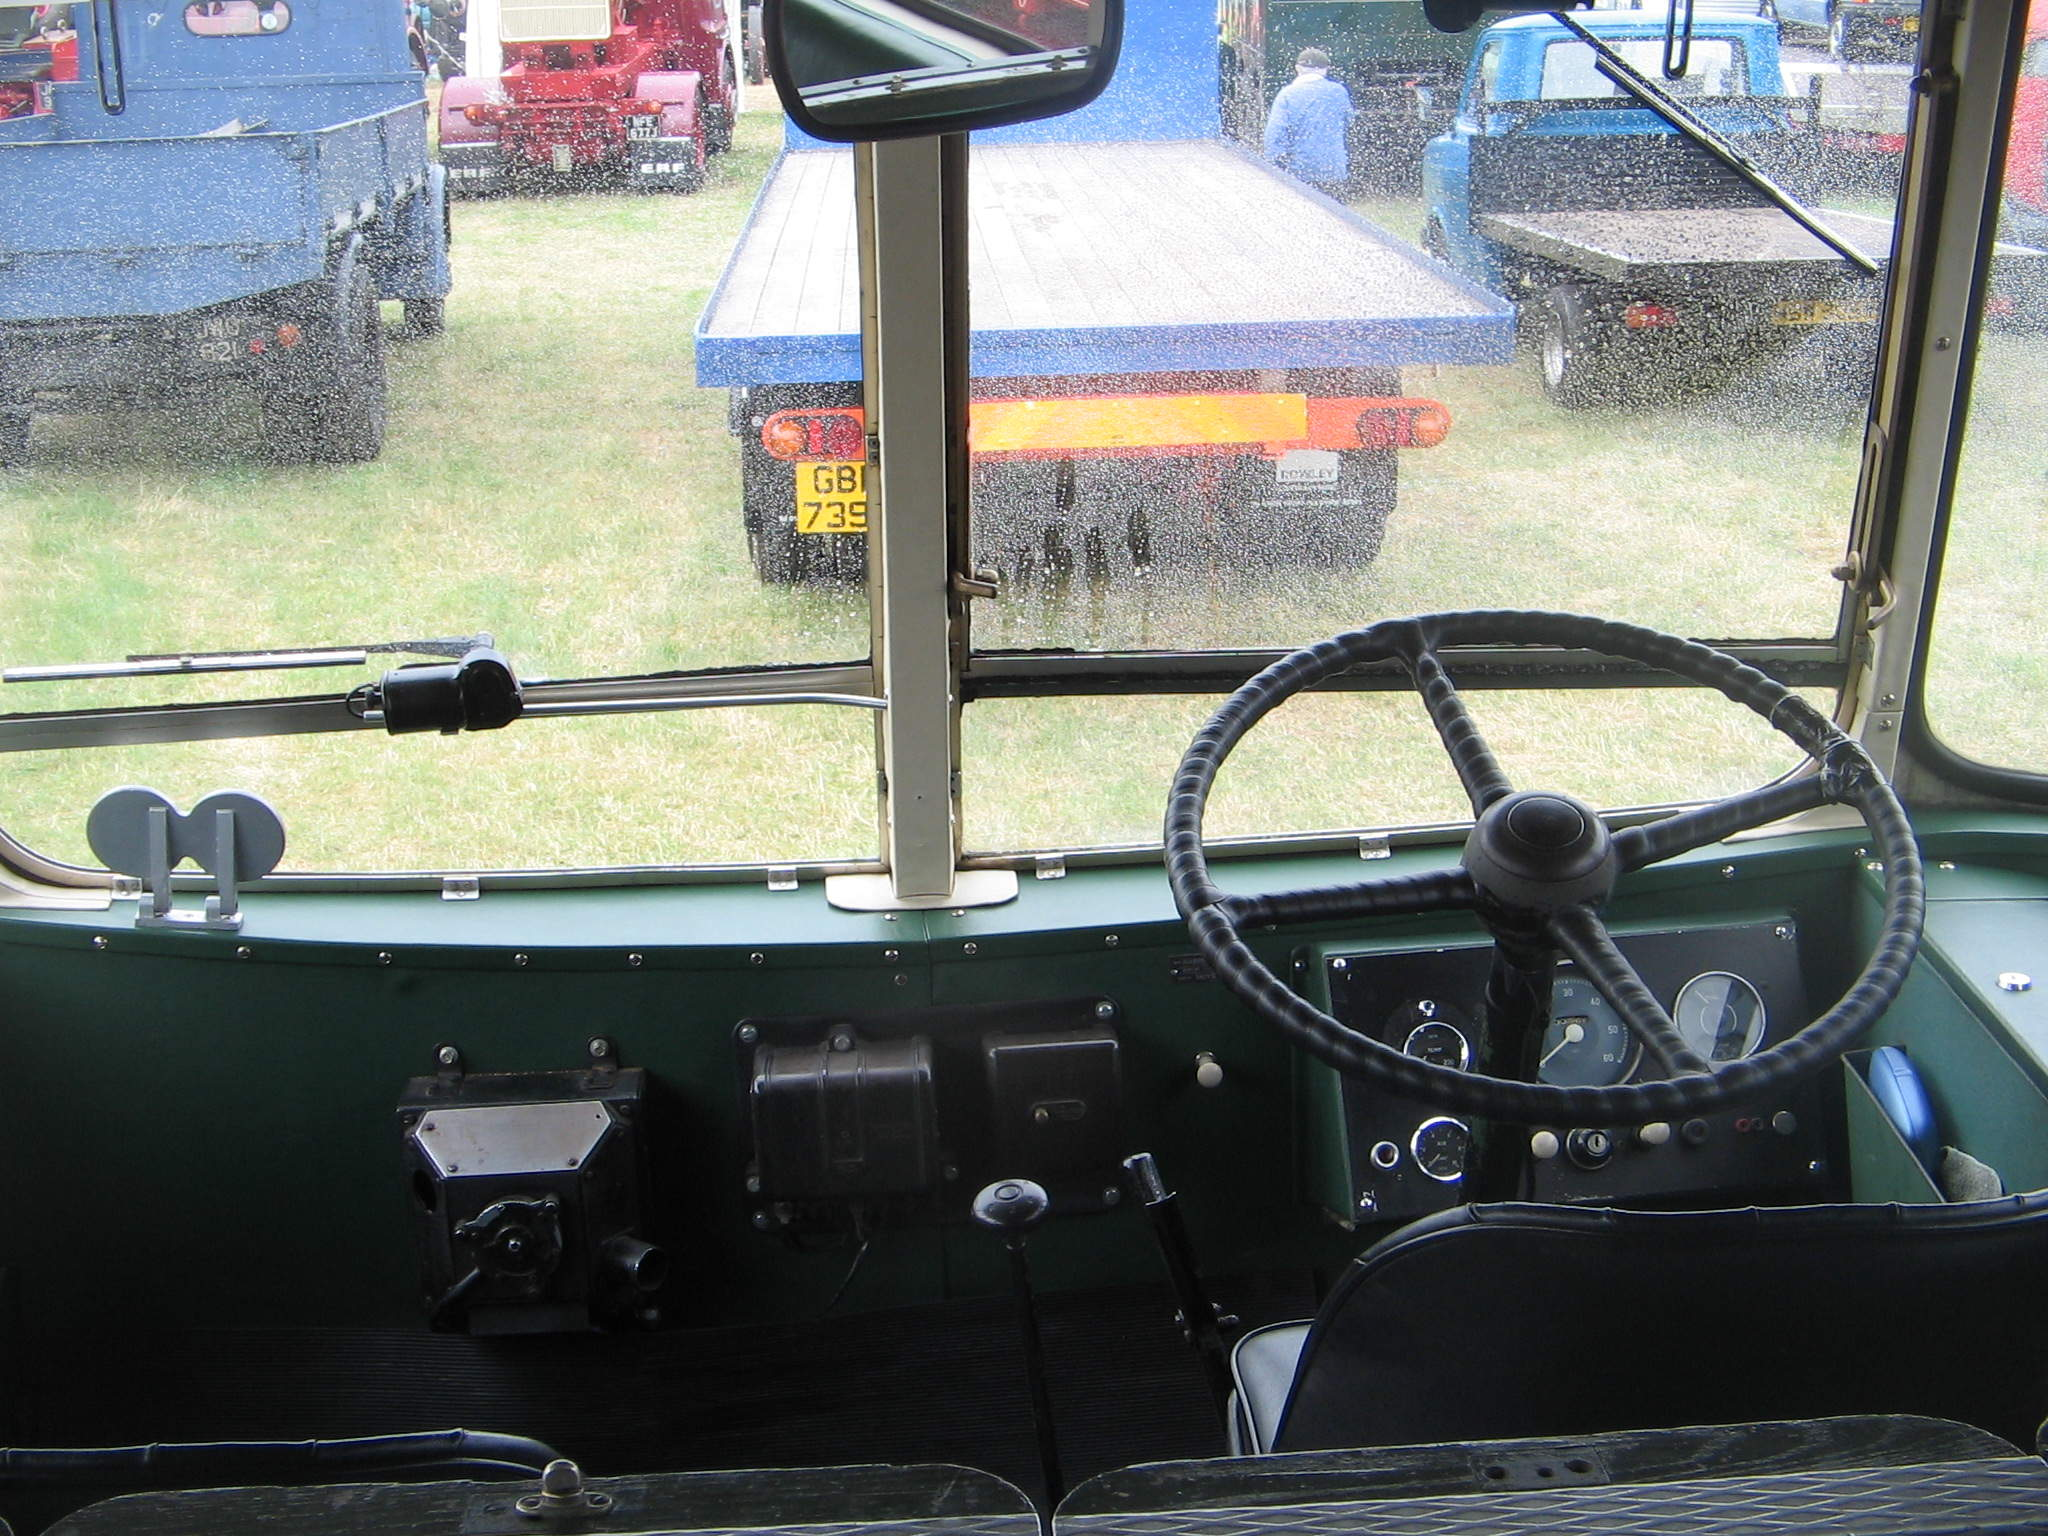 The Little Red Bus drivers cab